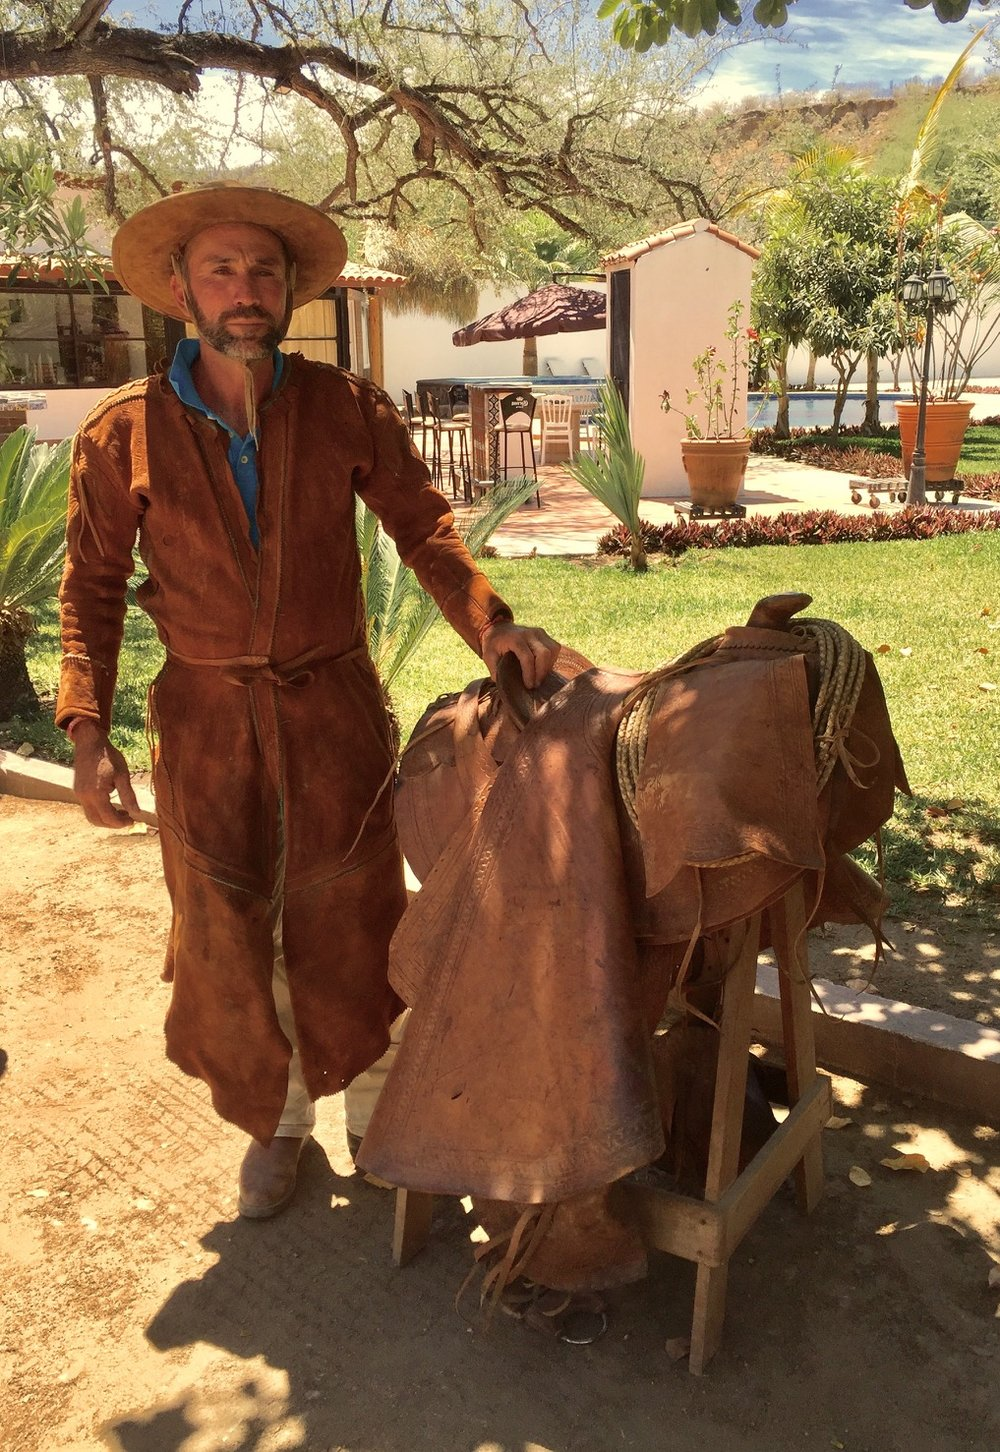 Oscar in traditional vaquero dress.